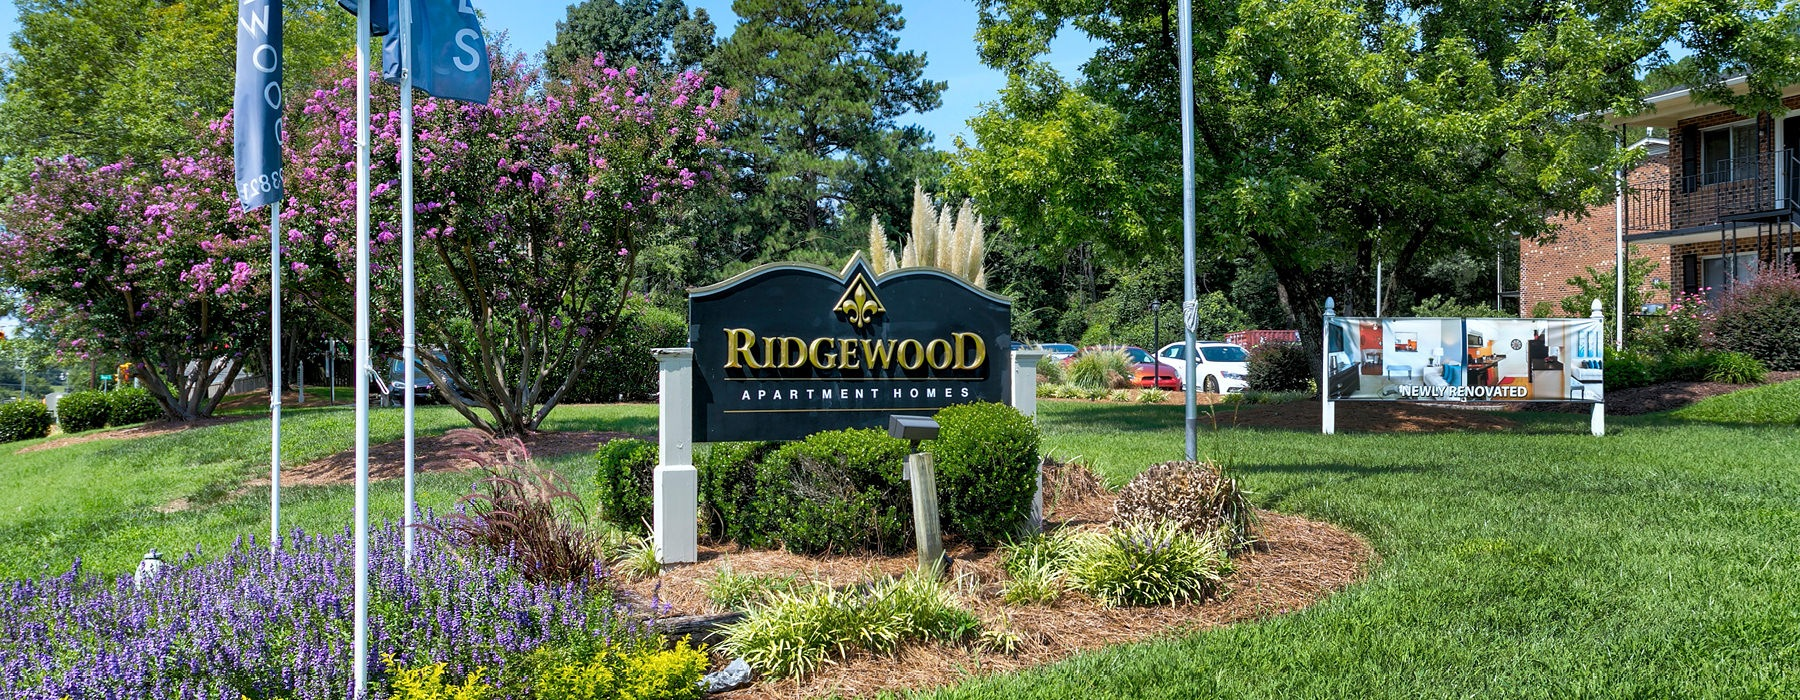 ridgewood property sign at the front of apartment complex